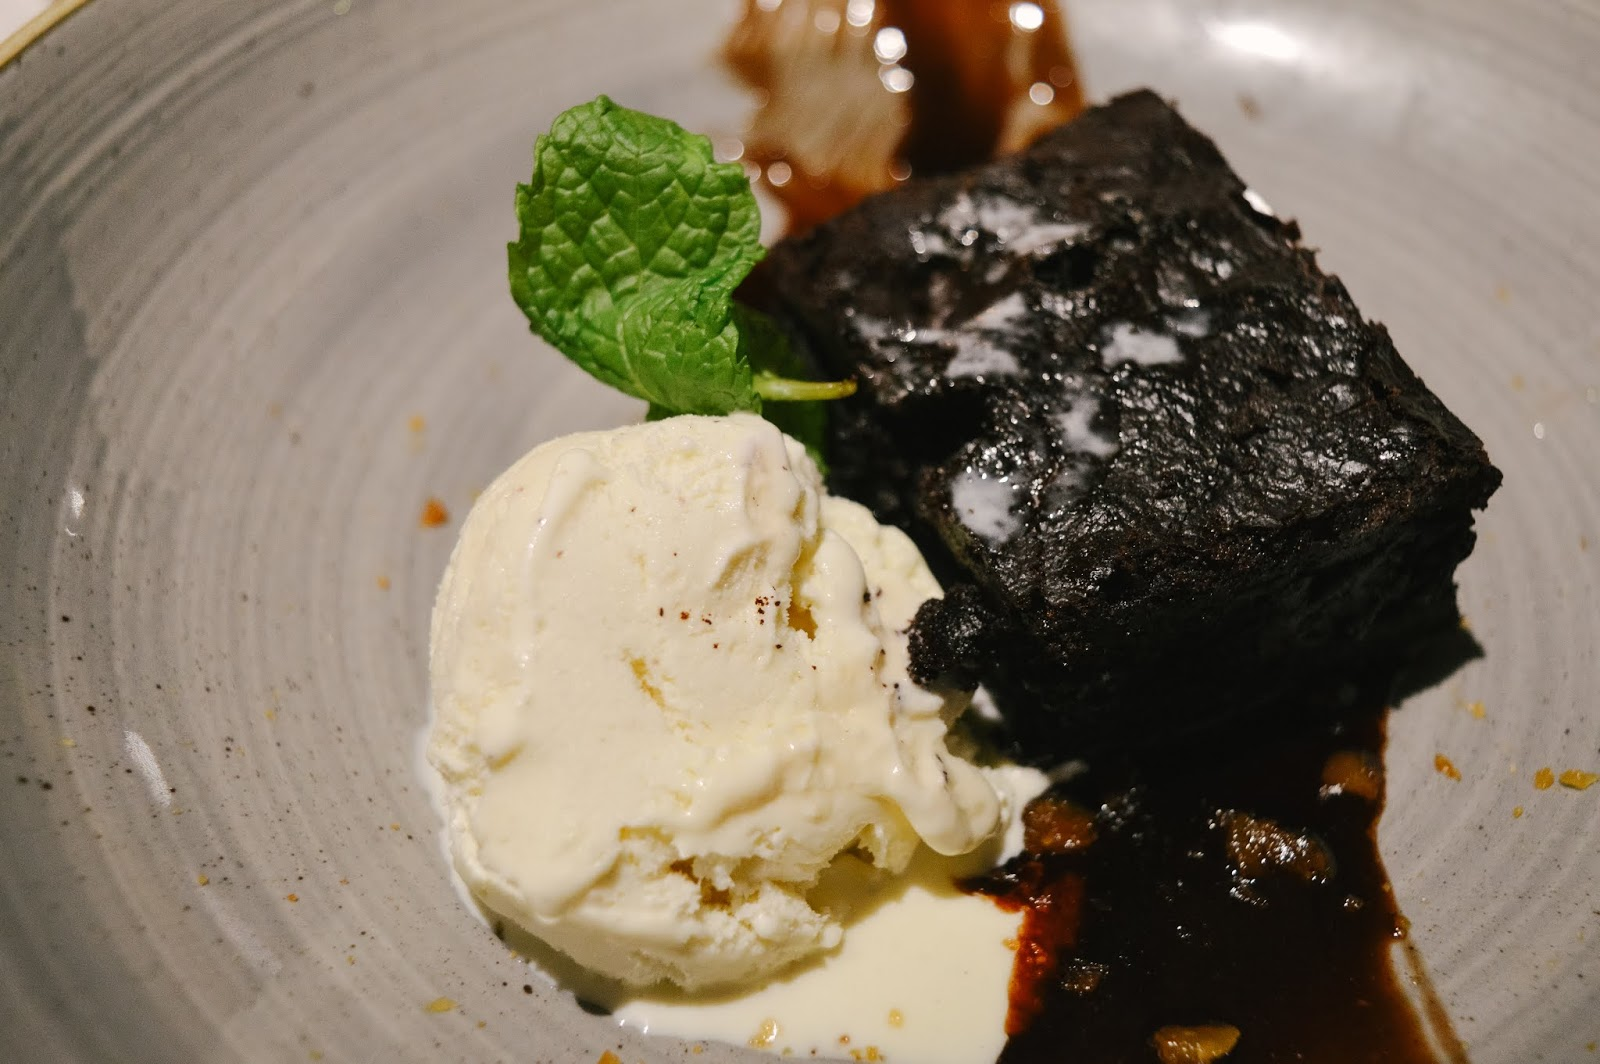 Warm chocolate brownie served at The Old Forge in Otterbourne